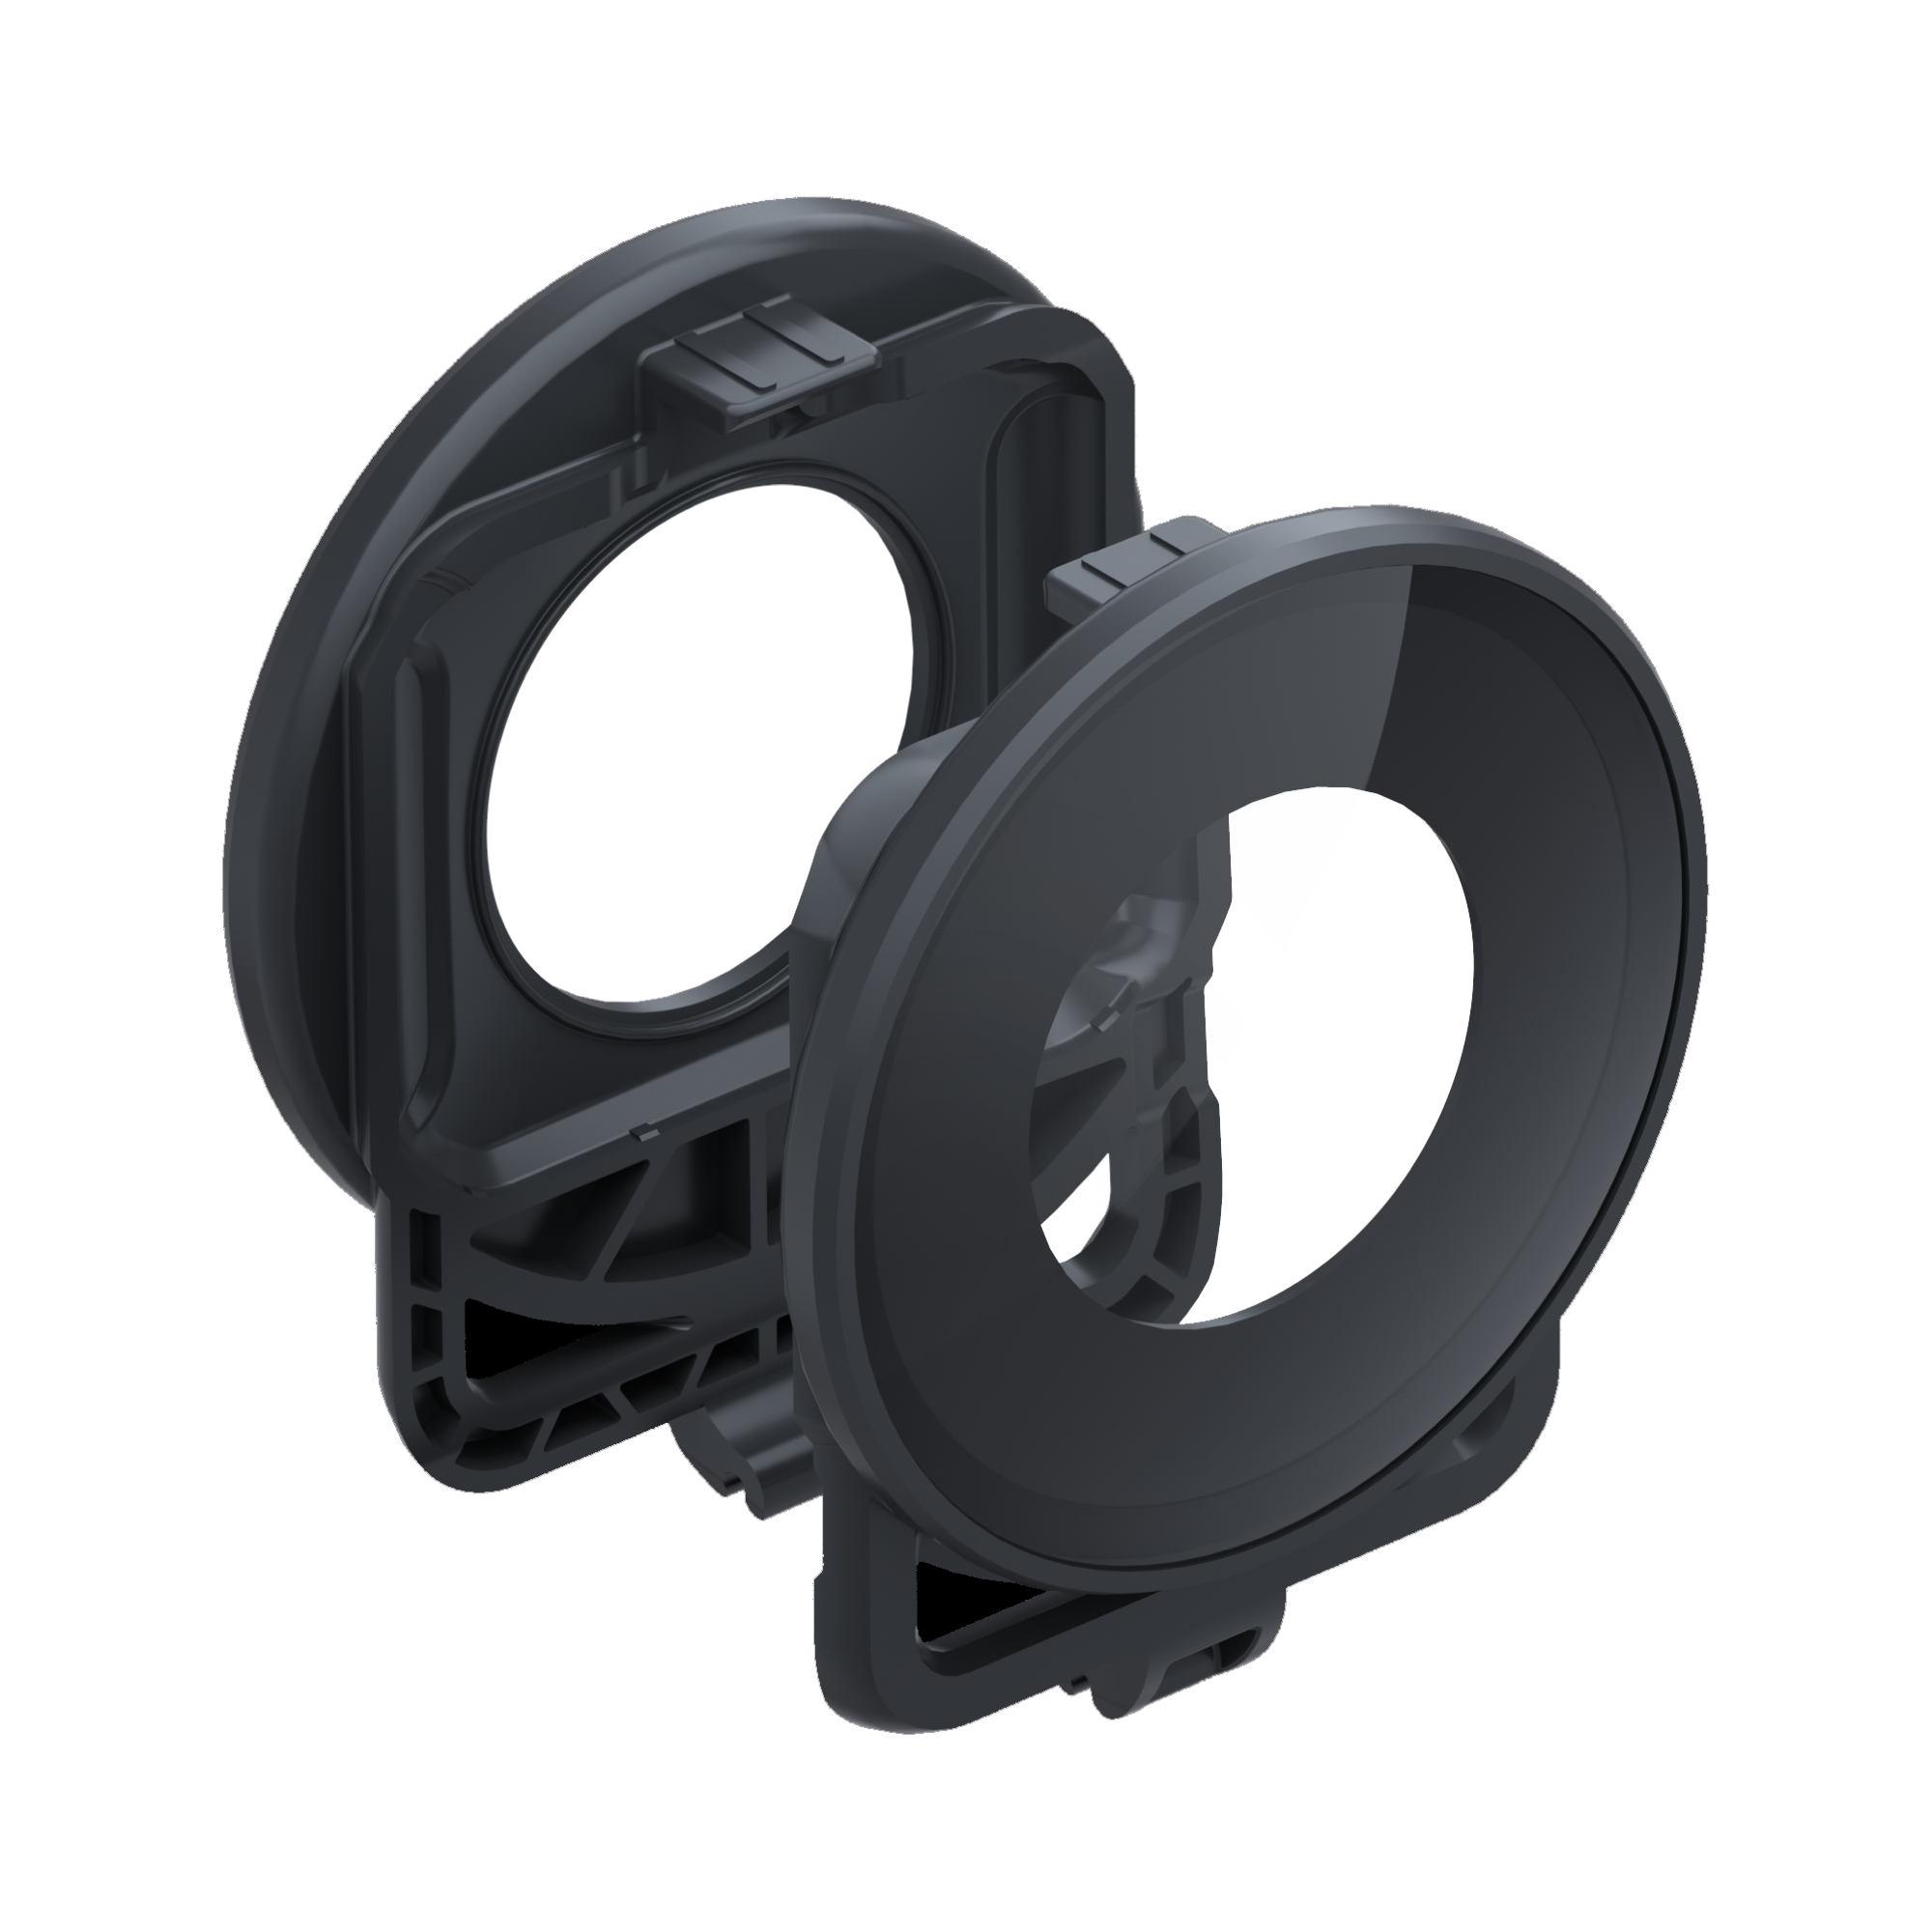 ONE R Lens Guard - leftview